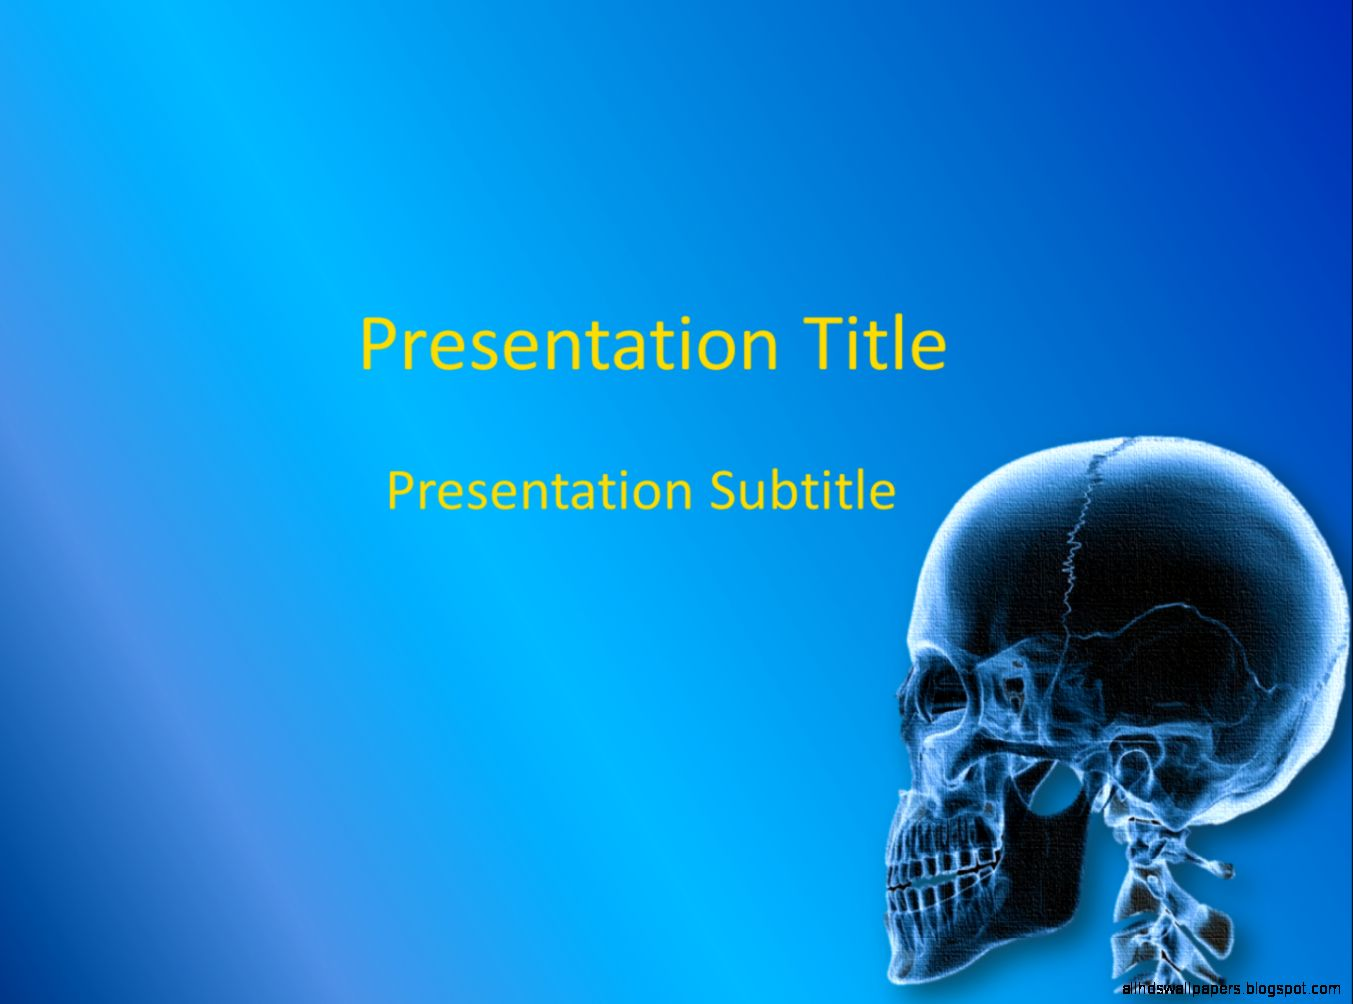 Download powerpoint templates all hd wallpapers view original size medical powerpoint templates download free toneelgroepblik Choice Image